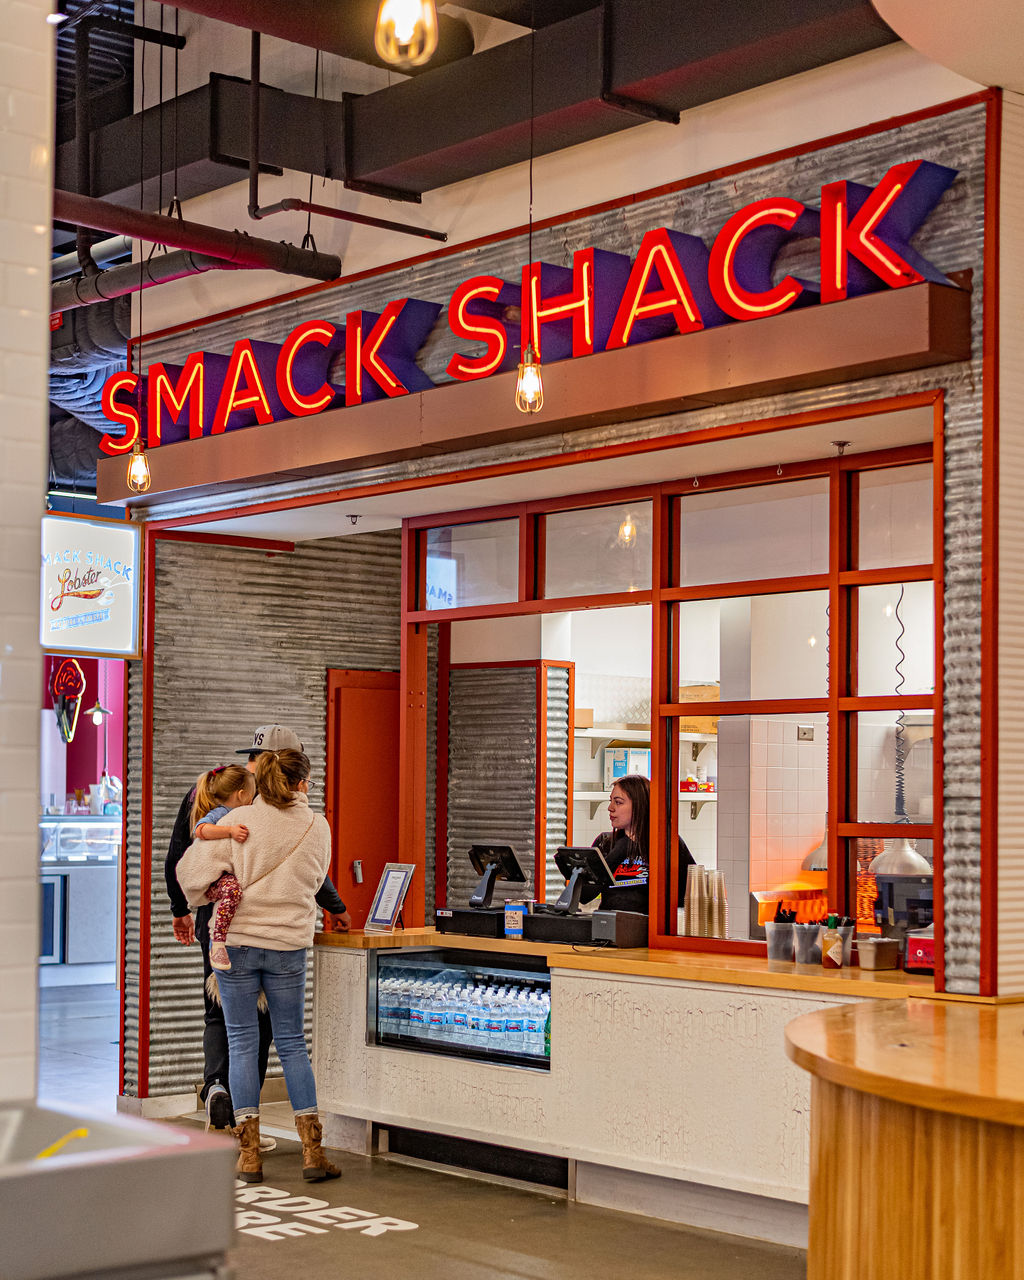 Smack Shack, at Potluck